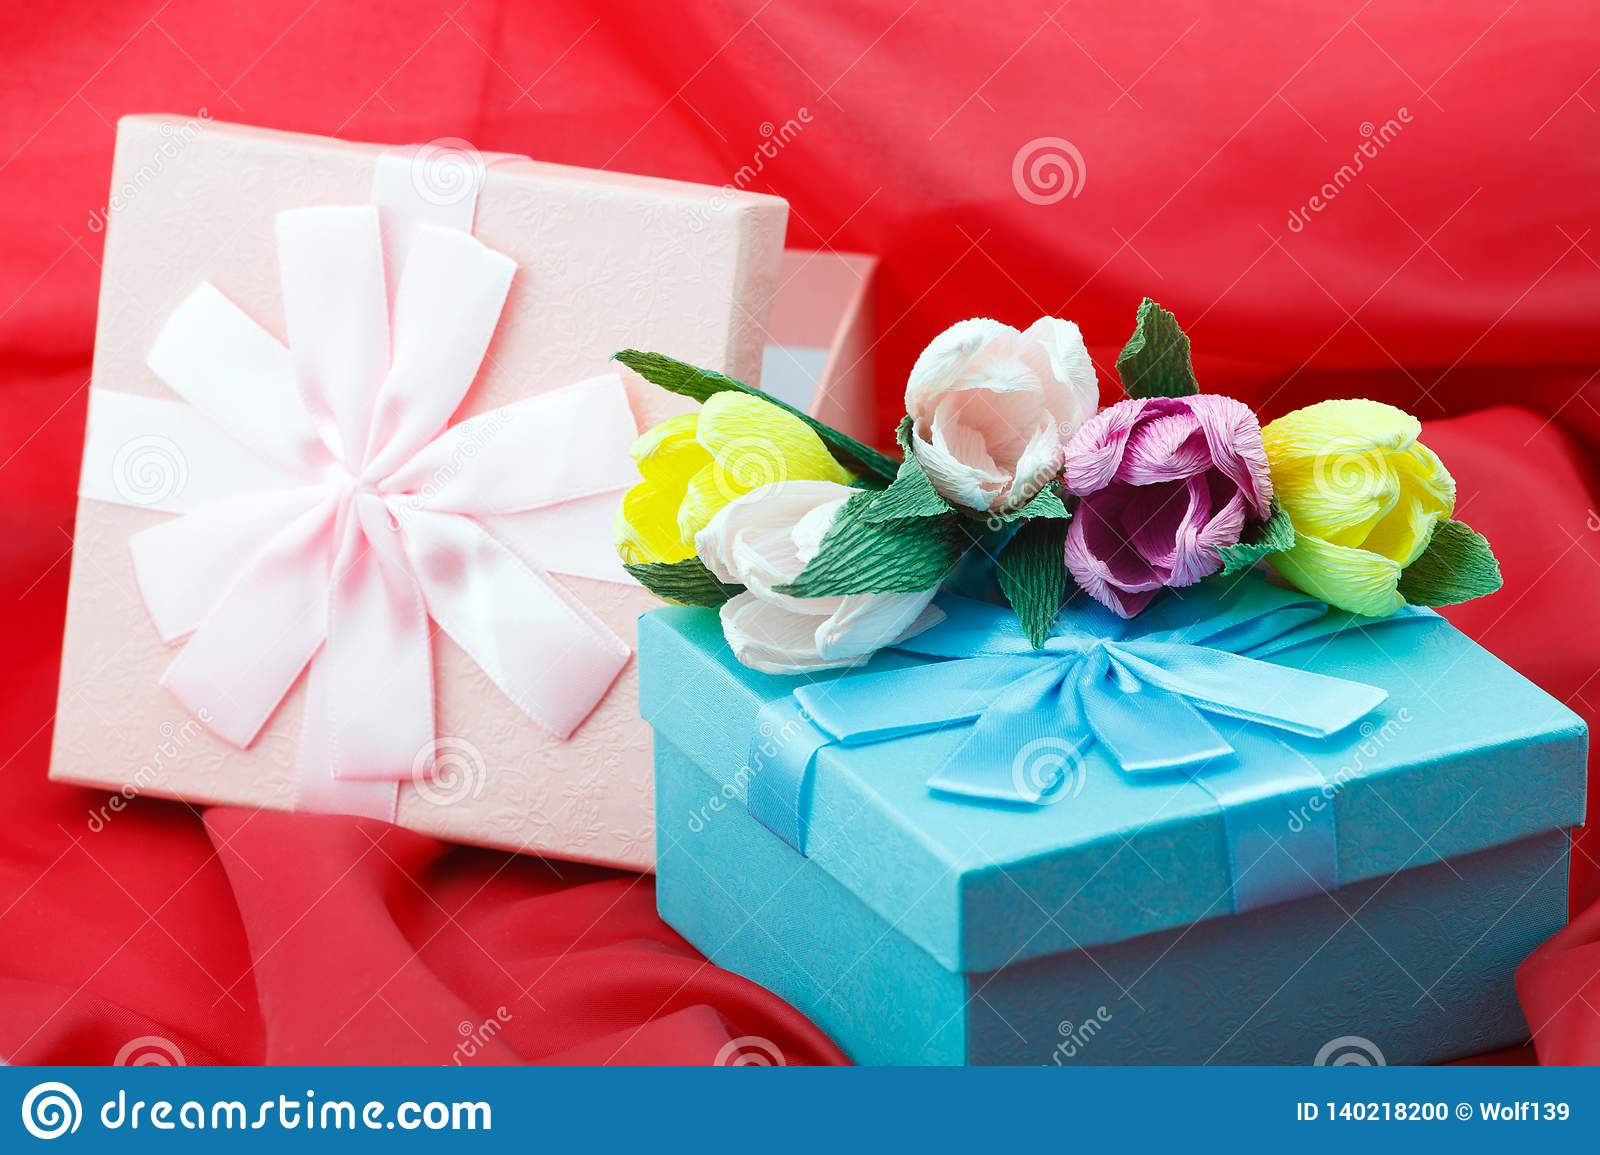 Presents In Boxes With Paper Flowers On The Red Background For